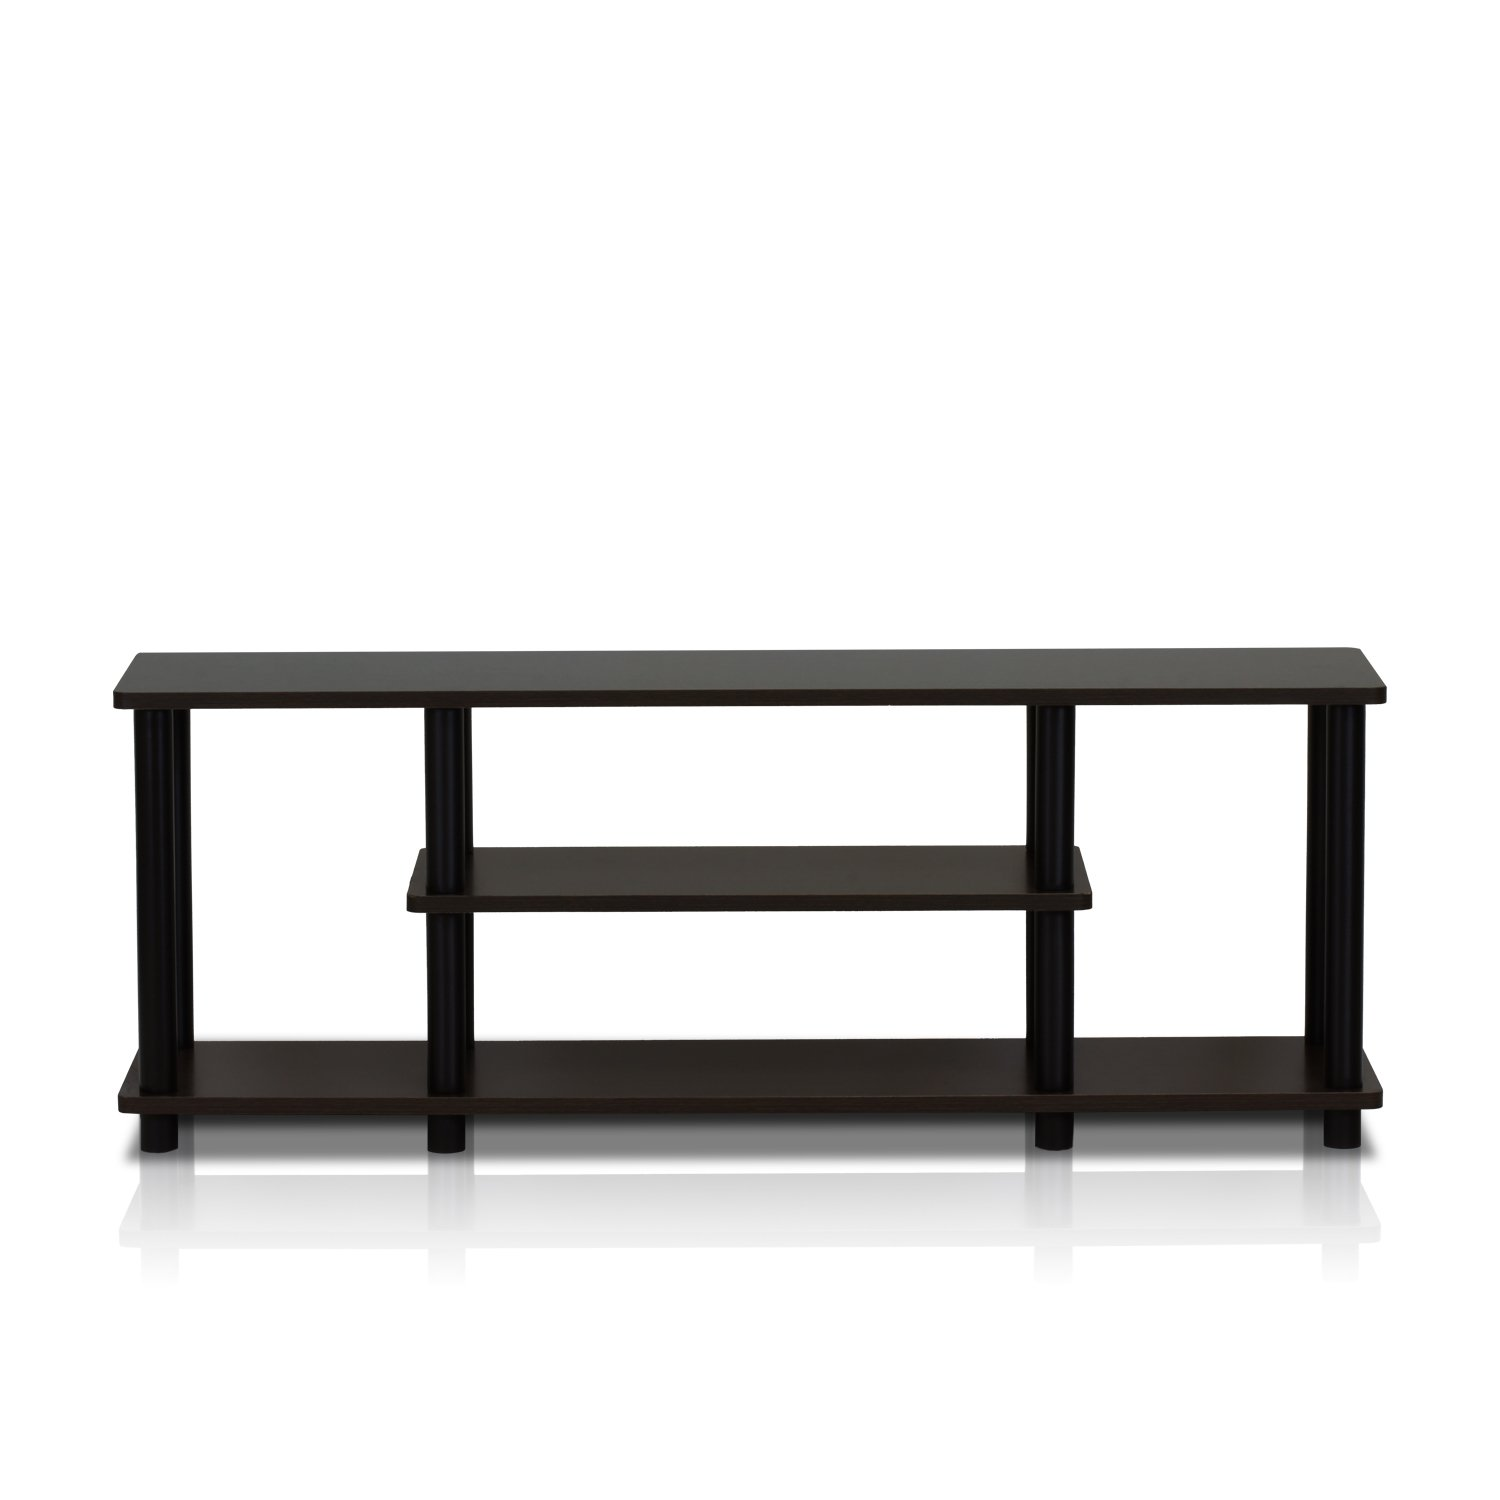 Furinno 12250R1WN/BK Turn-N-Tube No Tools 3D 3-Tier Entertainment TV Stands, Walnut